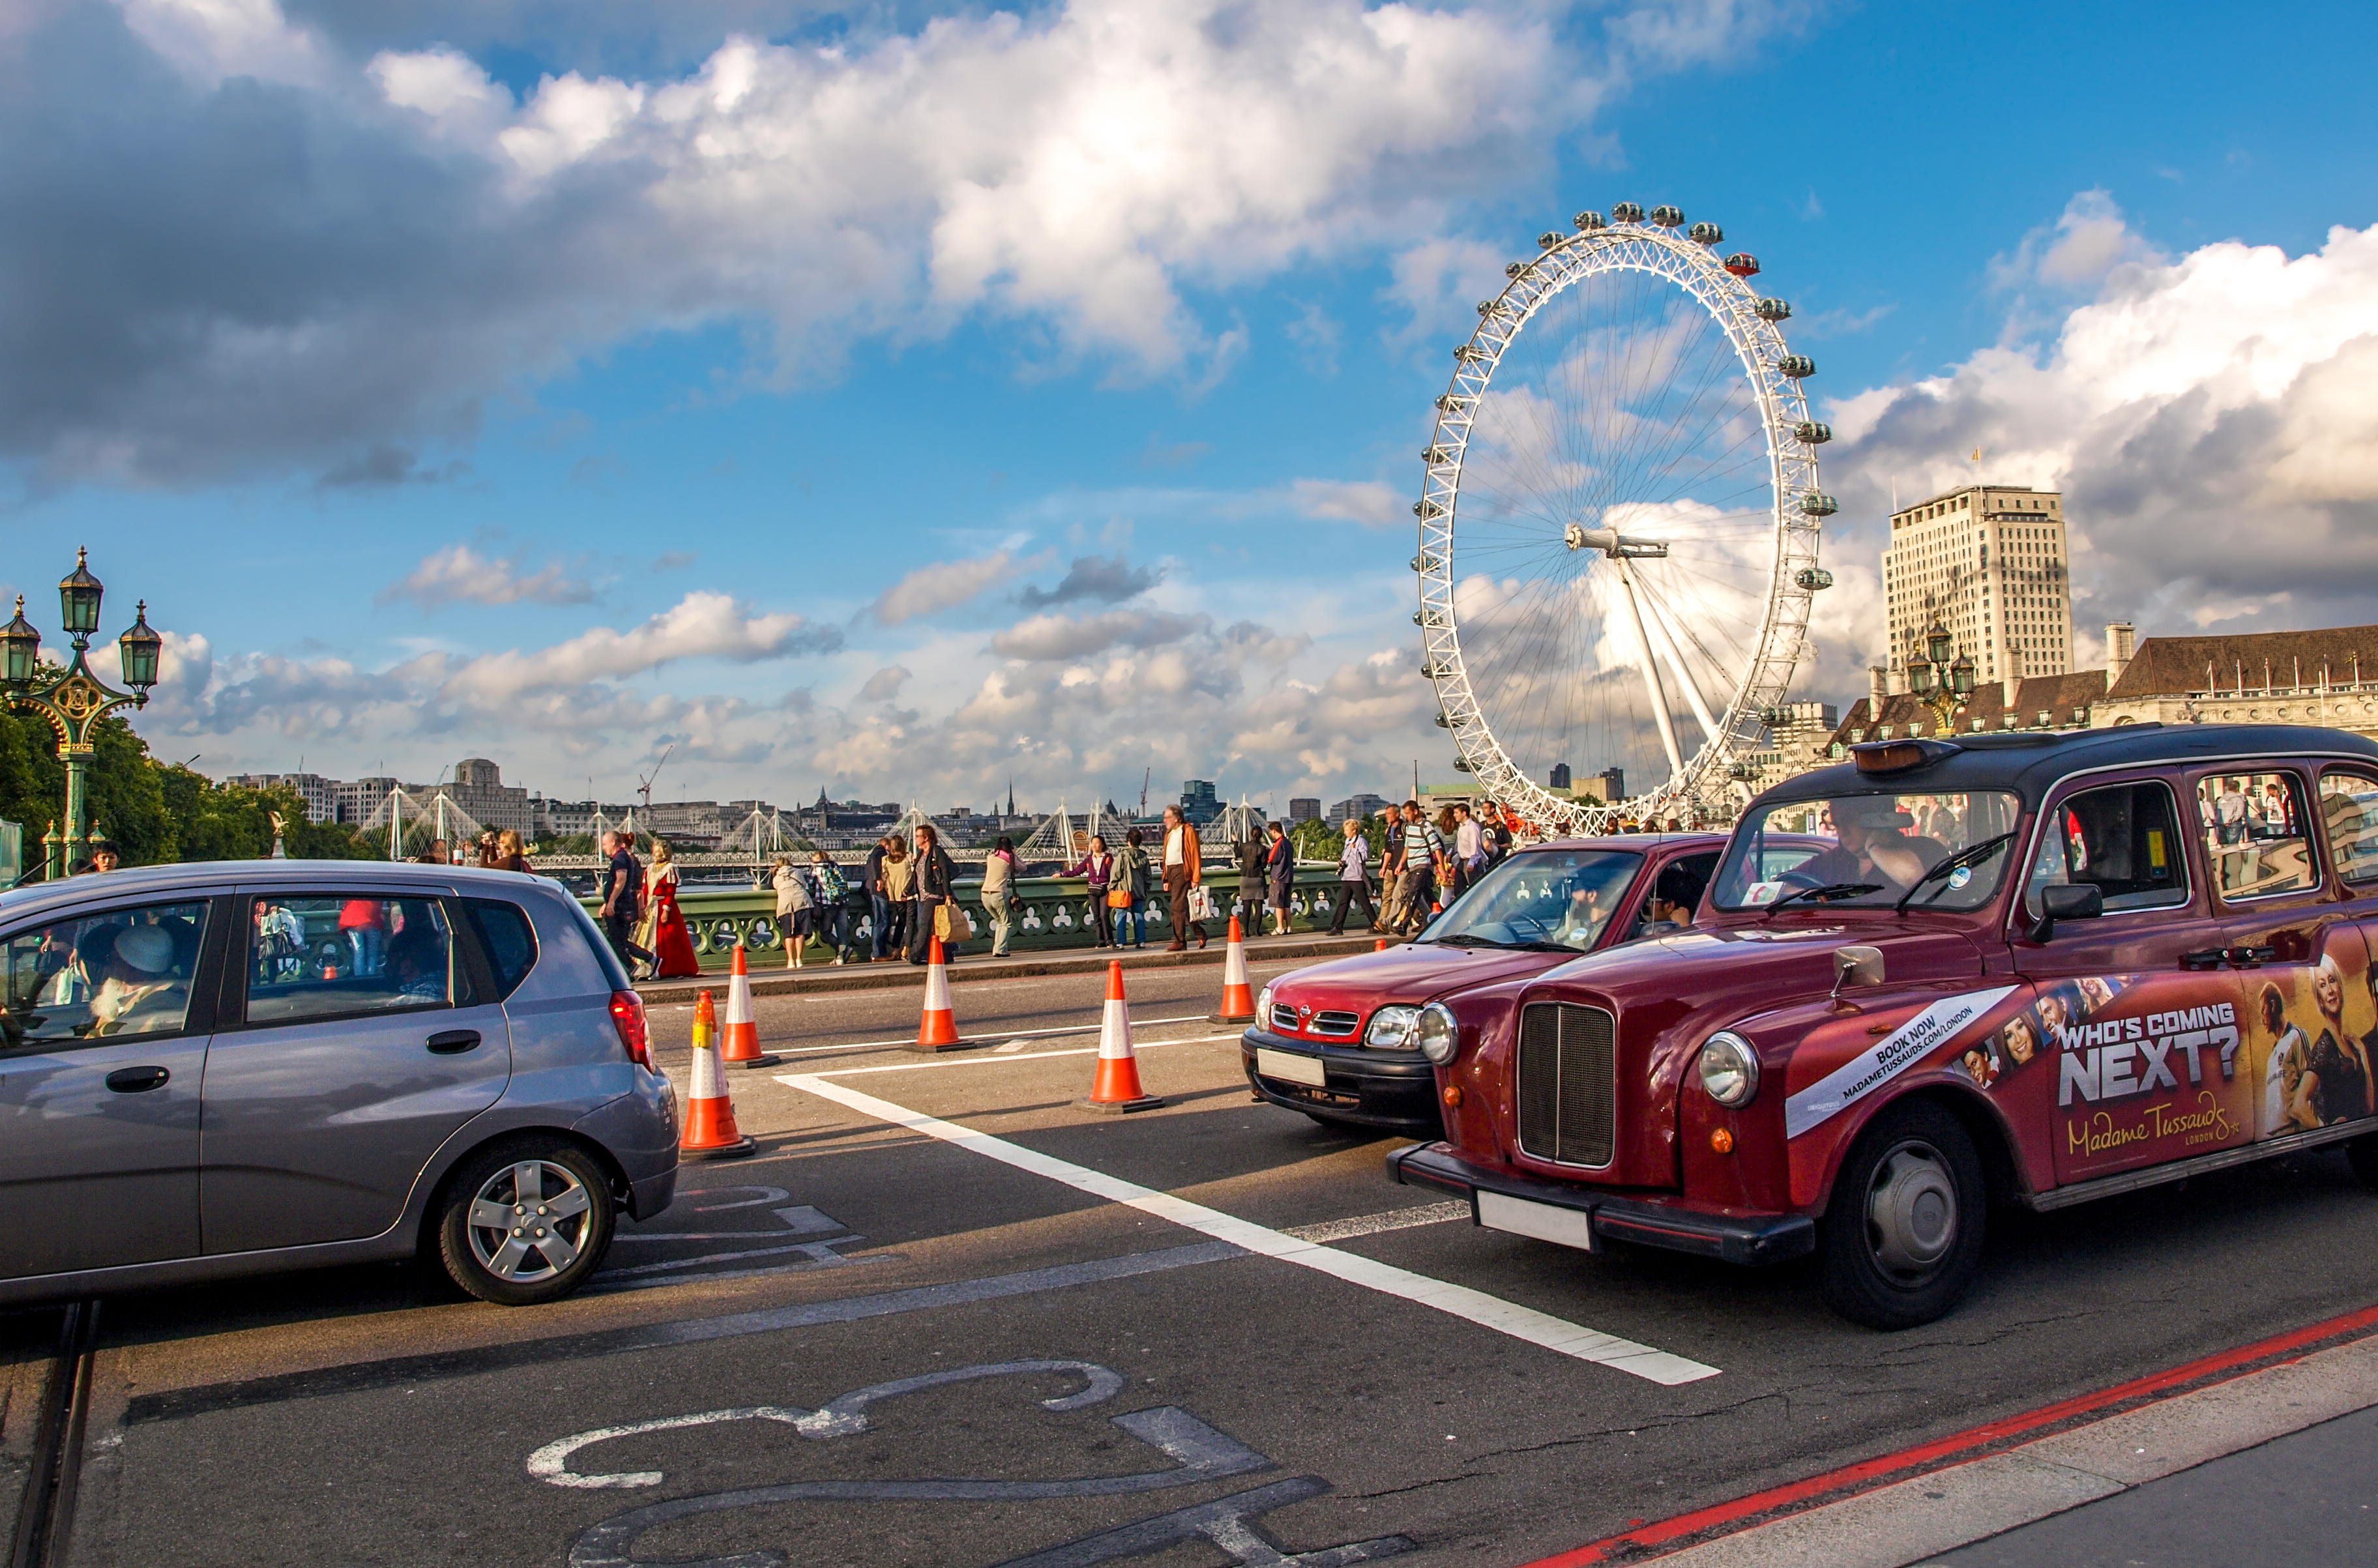 London Eye, England, UK, Britain, Road, Vehicle, Urban, HQ Photo